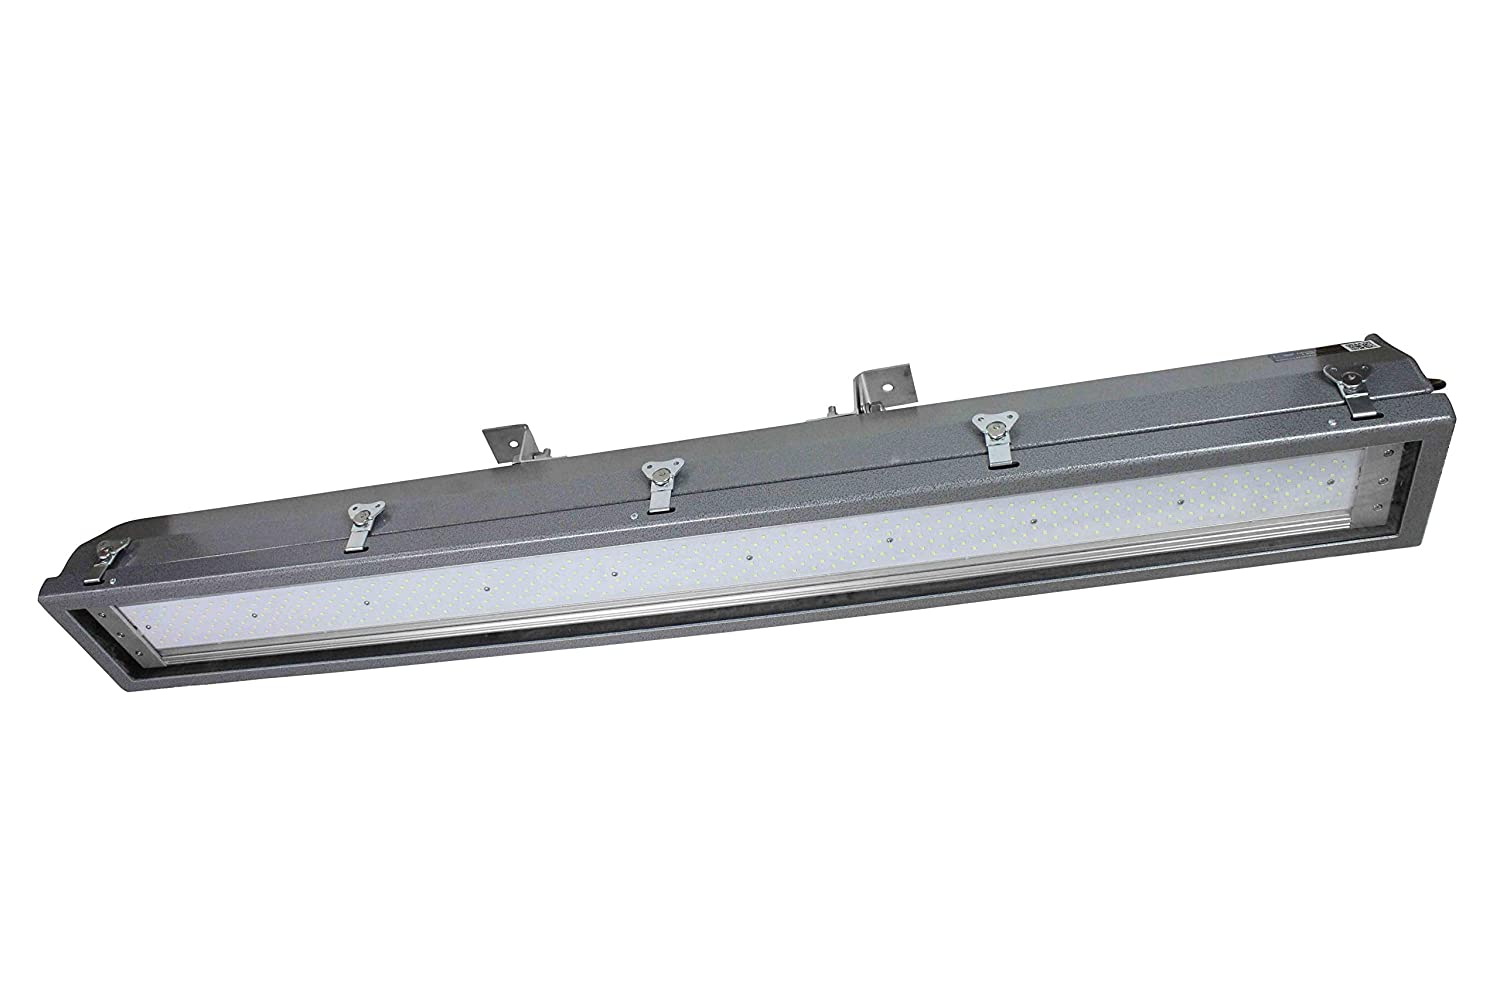 160W C1D2 4' 2-Lamp LED Light - Lamps Operate On Individual Circuits